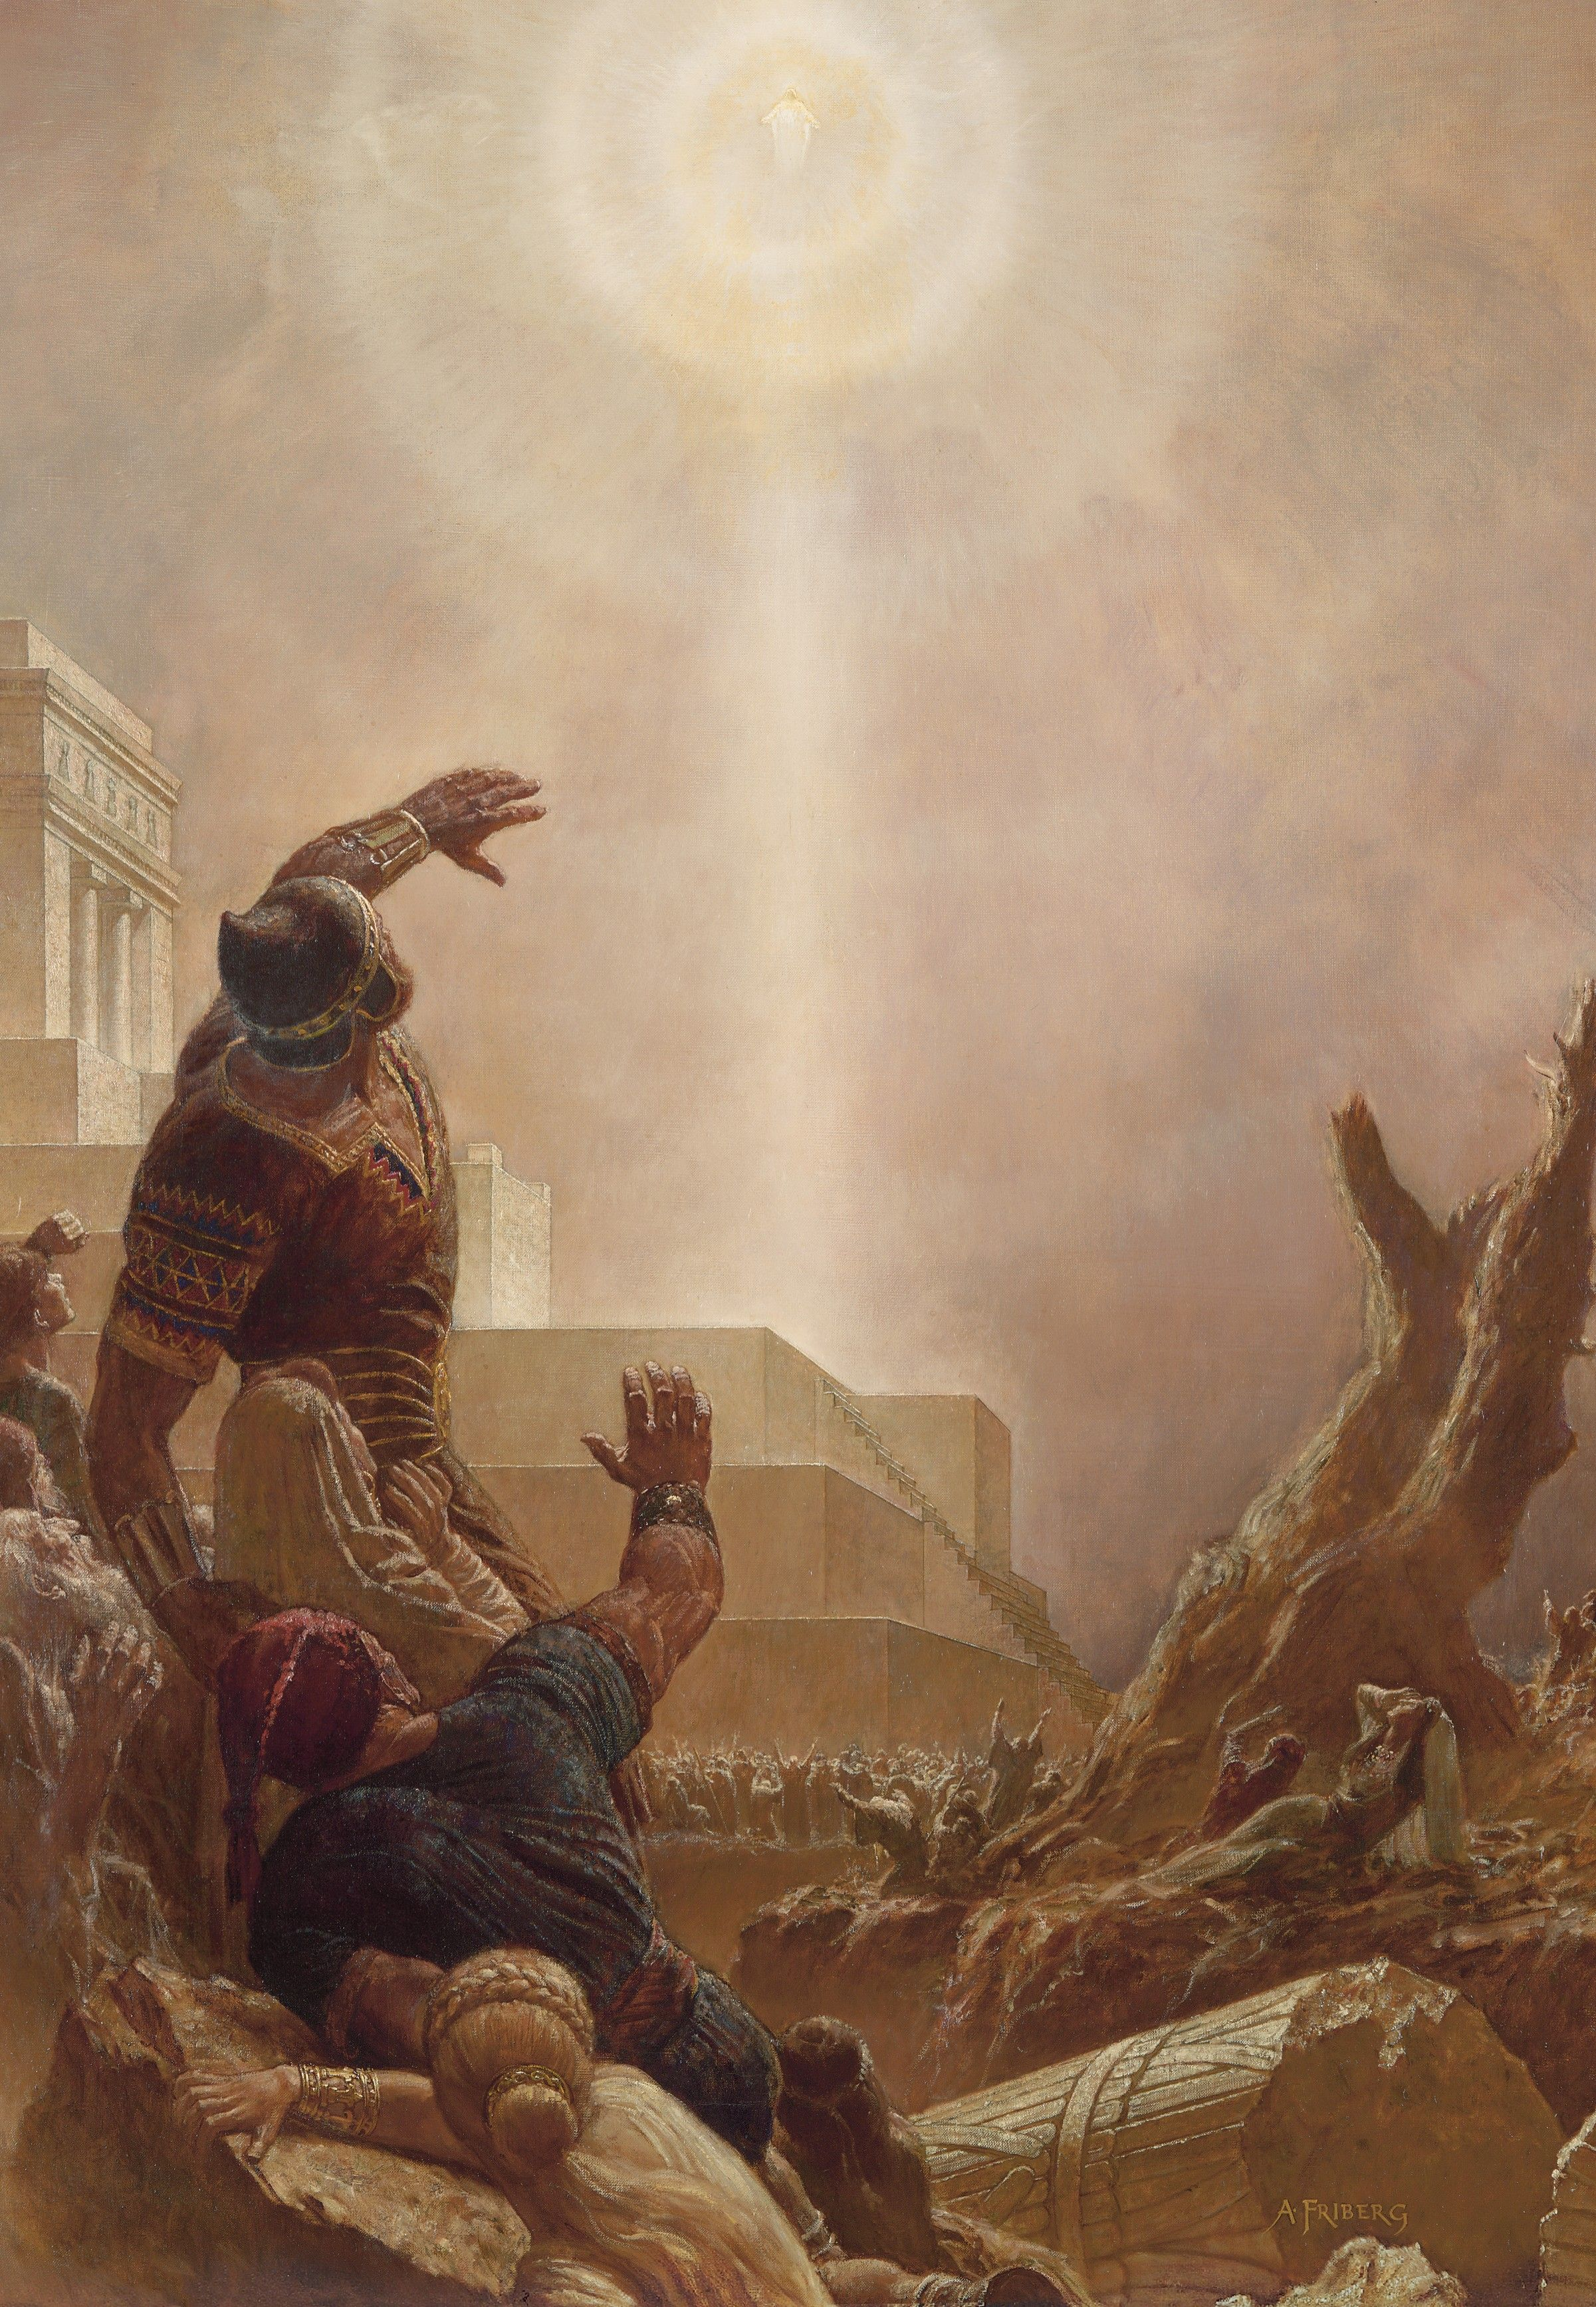 Jesus Christ Appears to the Nephites, by Arnold Friberg (62047); GAK 315; Primary manual 3-72; Primary manual 4-43; 3 Nephi 11:8